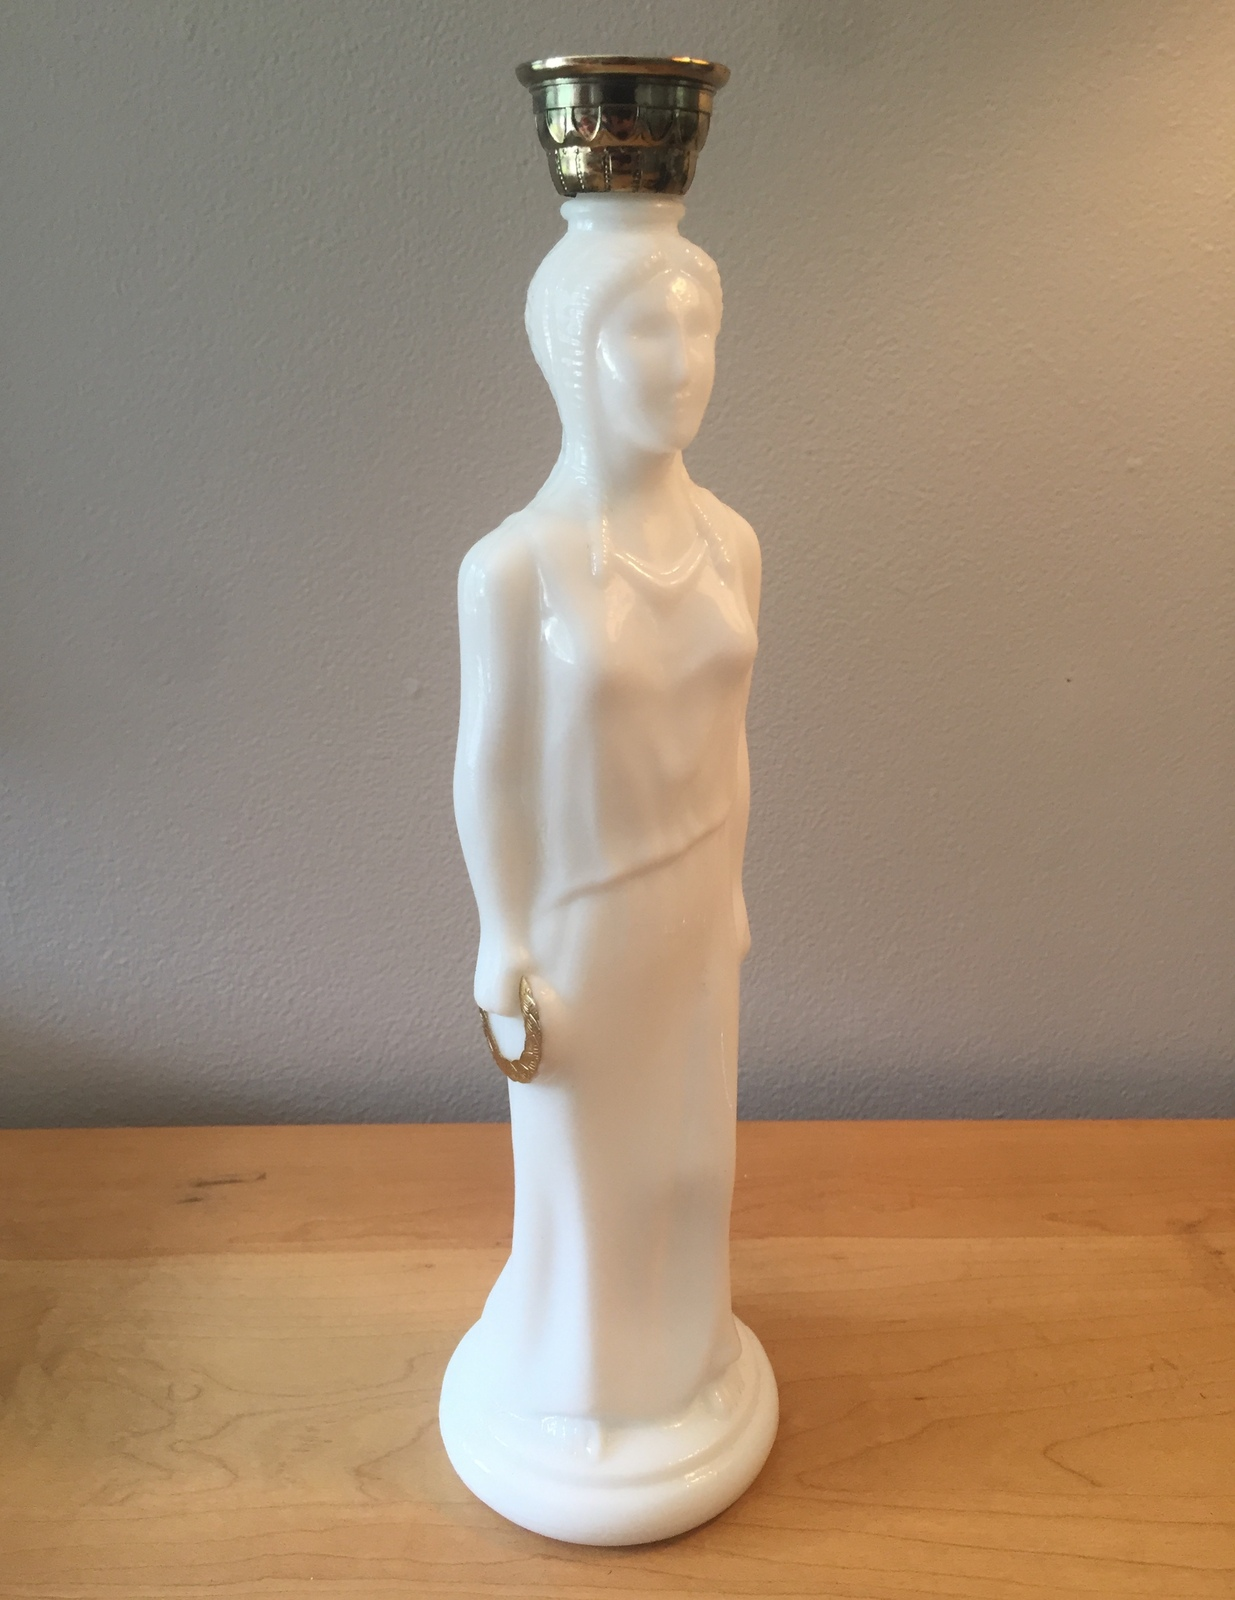 70s Avon Greek Goddess milk glass and gold accent bath oil bottle (Skin so Soft)